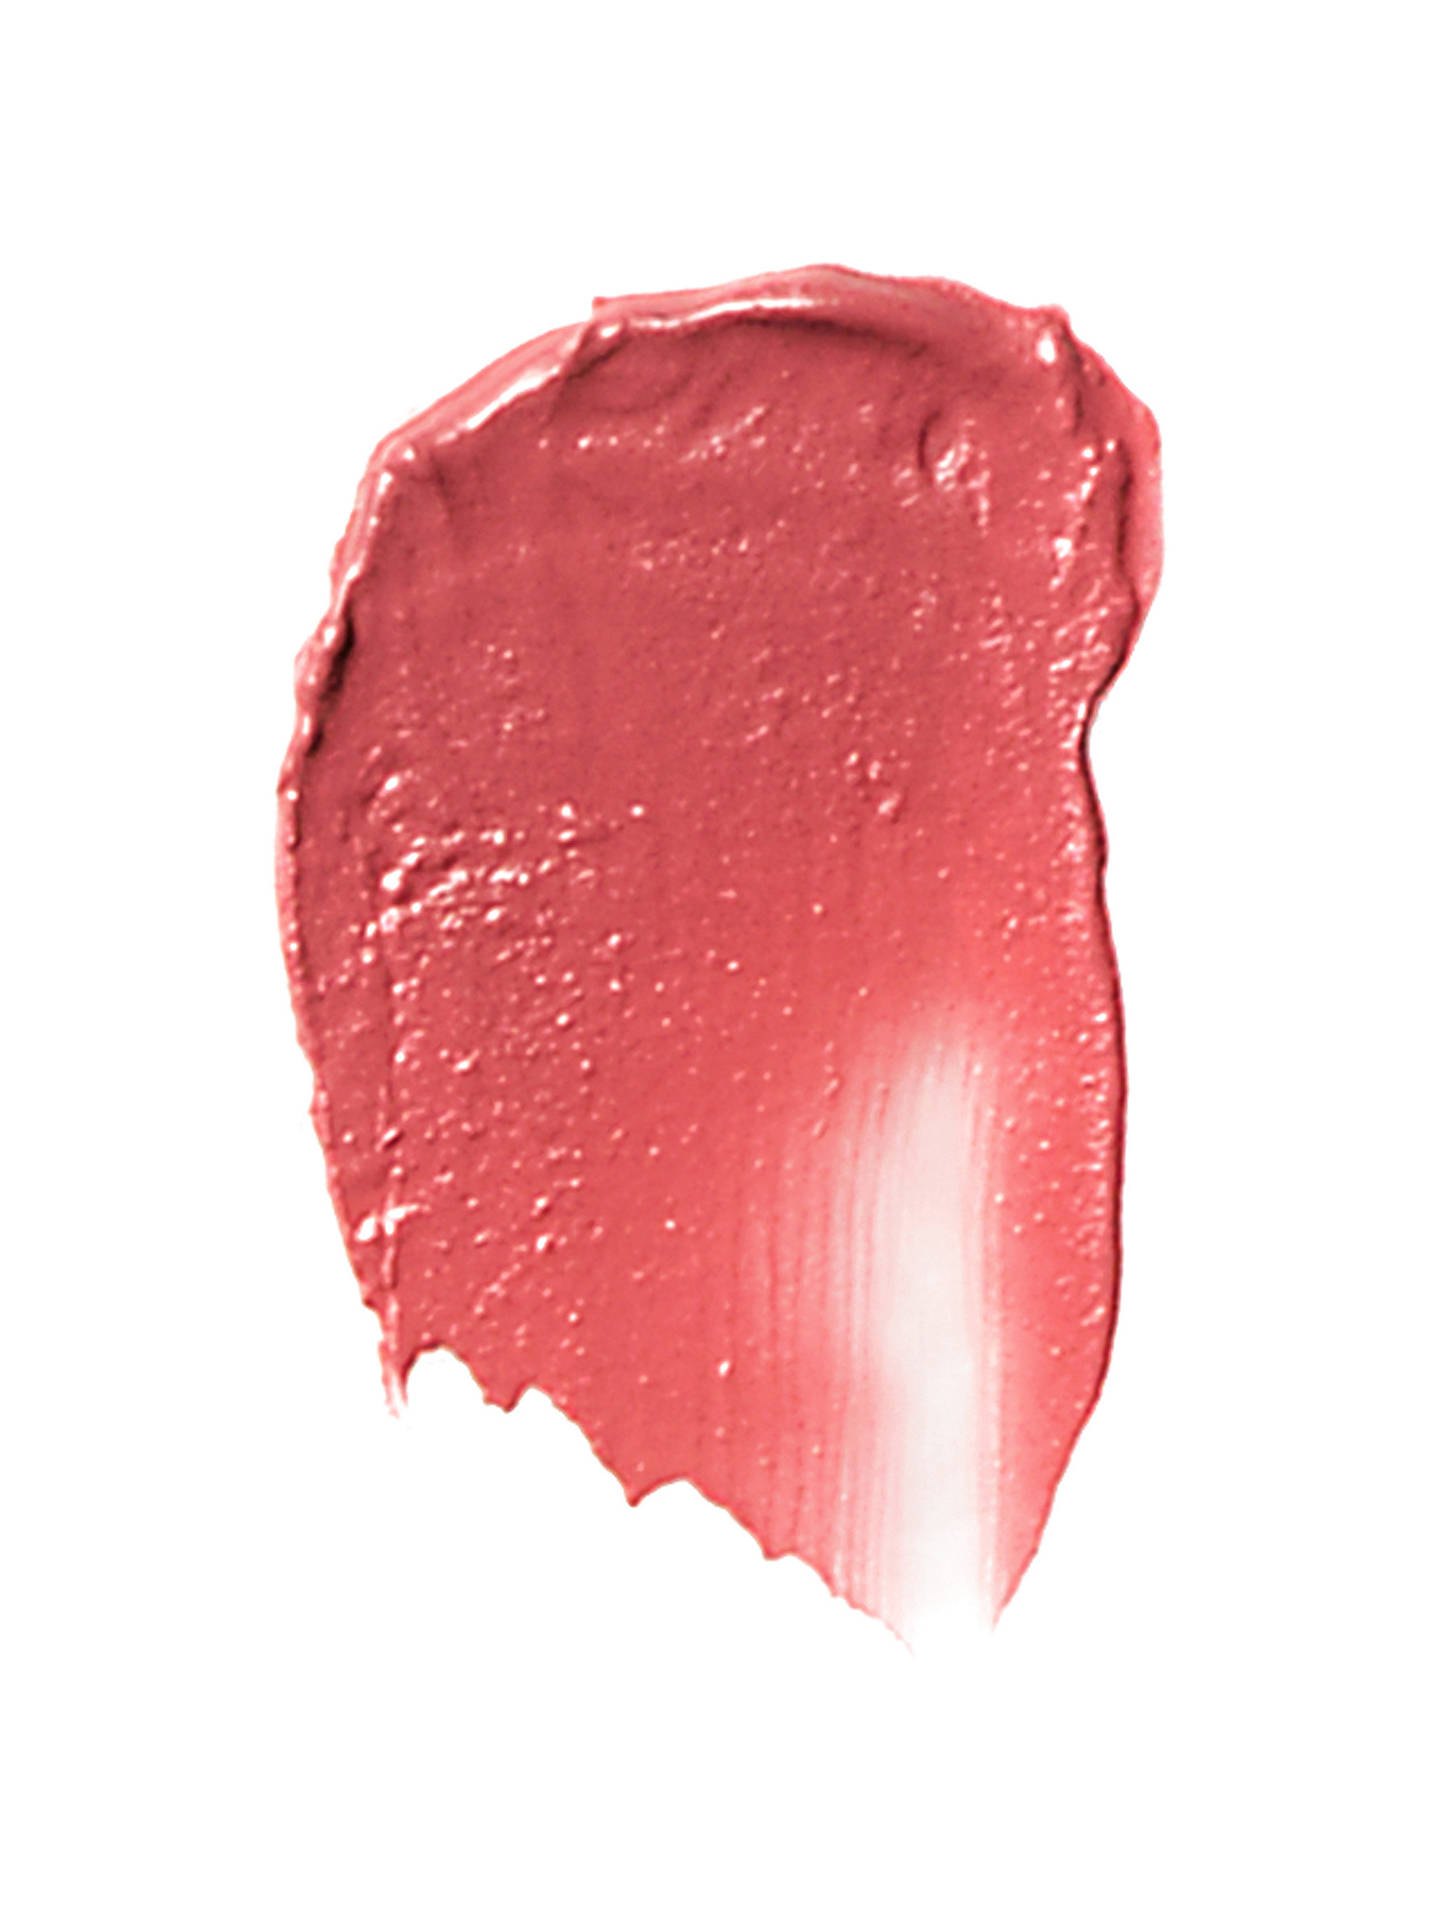 Buy Bobbi Brown Pretty Powerful Pot Rouge Limited Edition Blusher, Pretty Powerful I Online at johnlewis.com